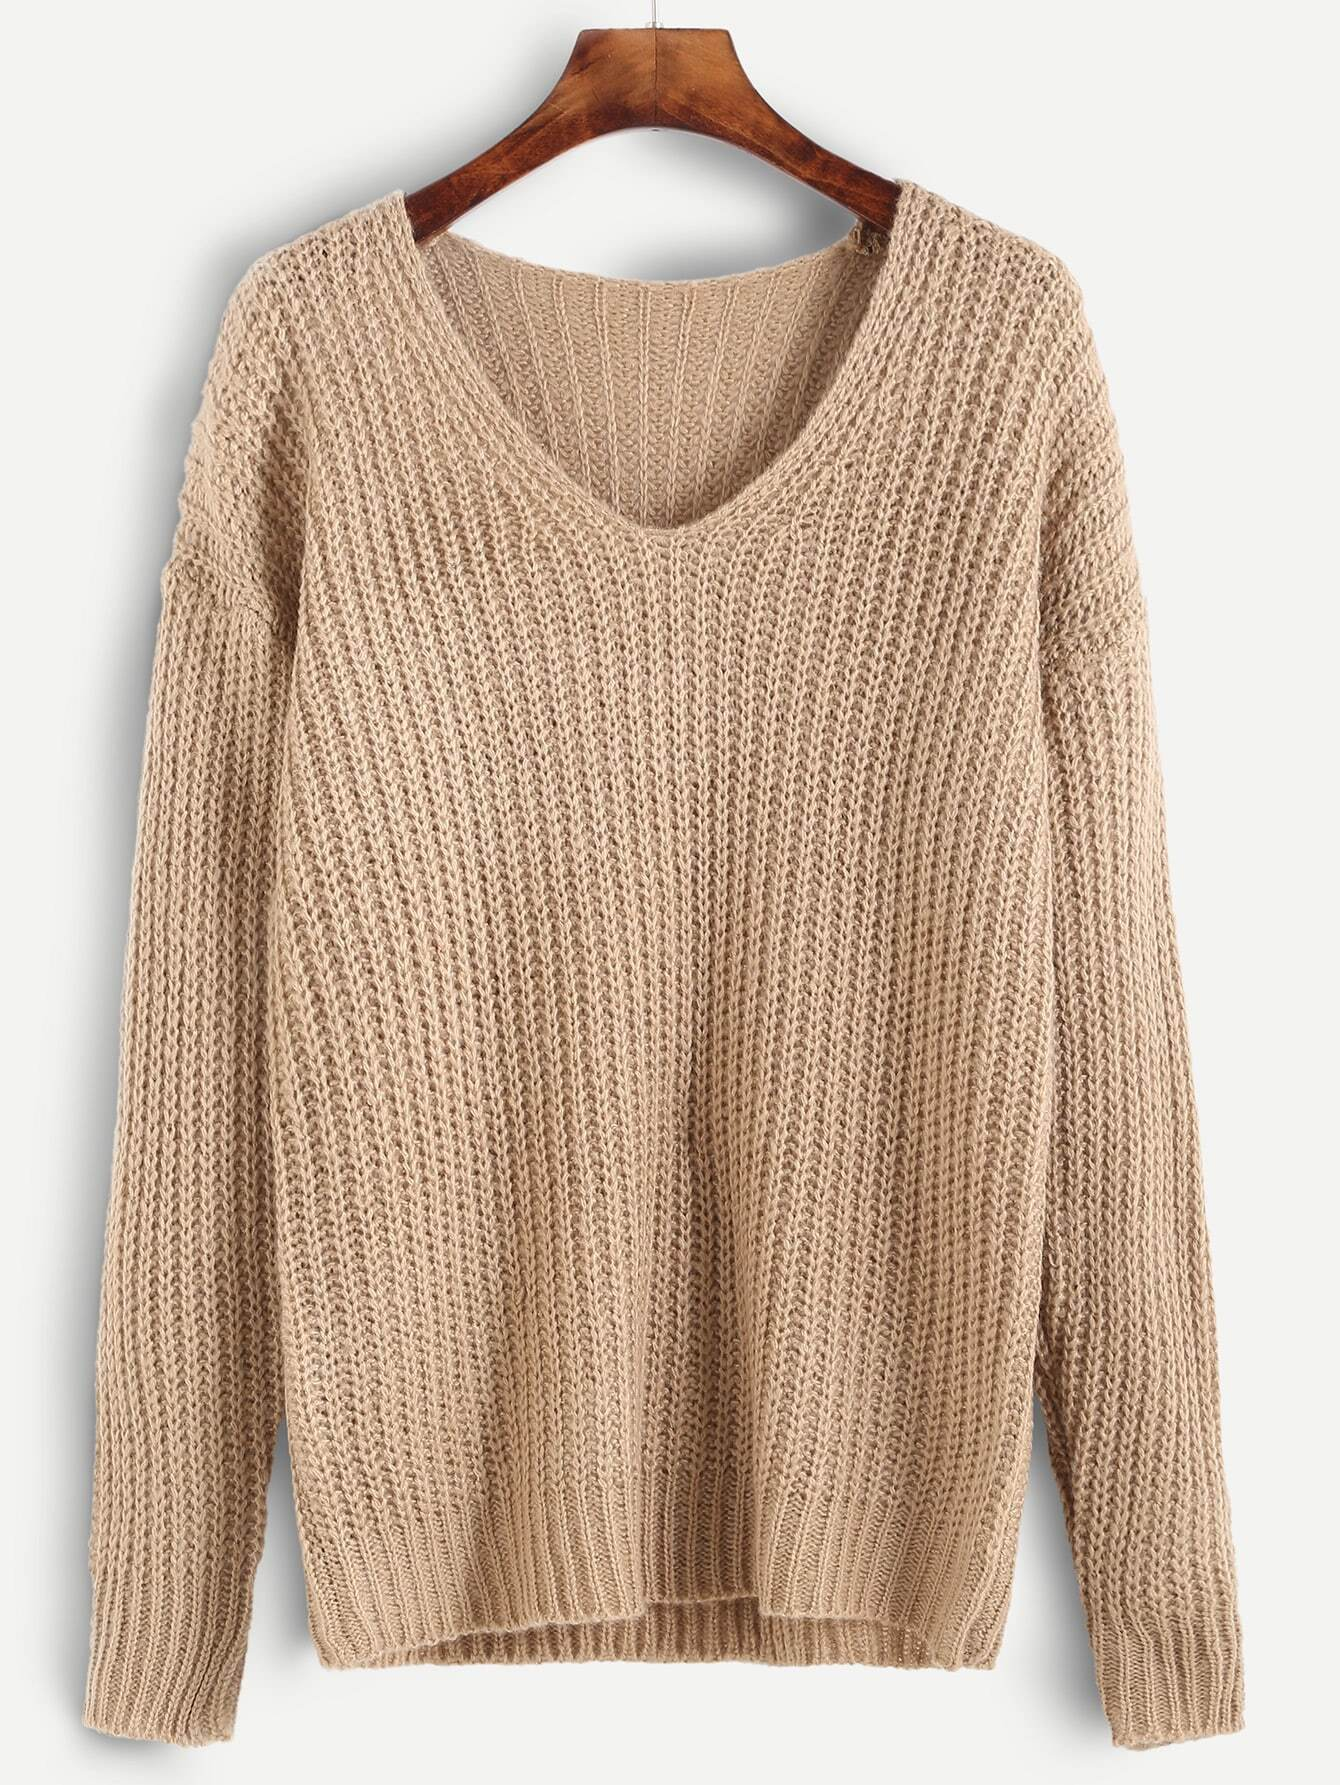 Apricot Ribbed Knit Drop Shoulder Sweater sweater160920455